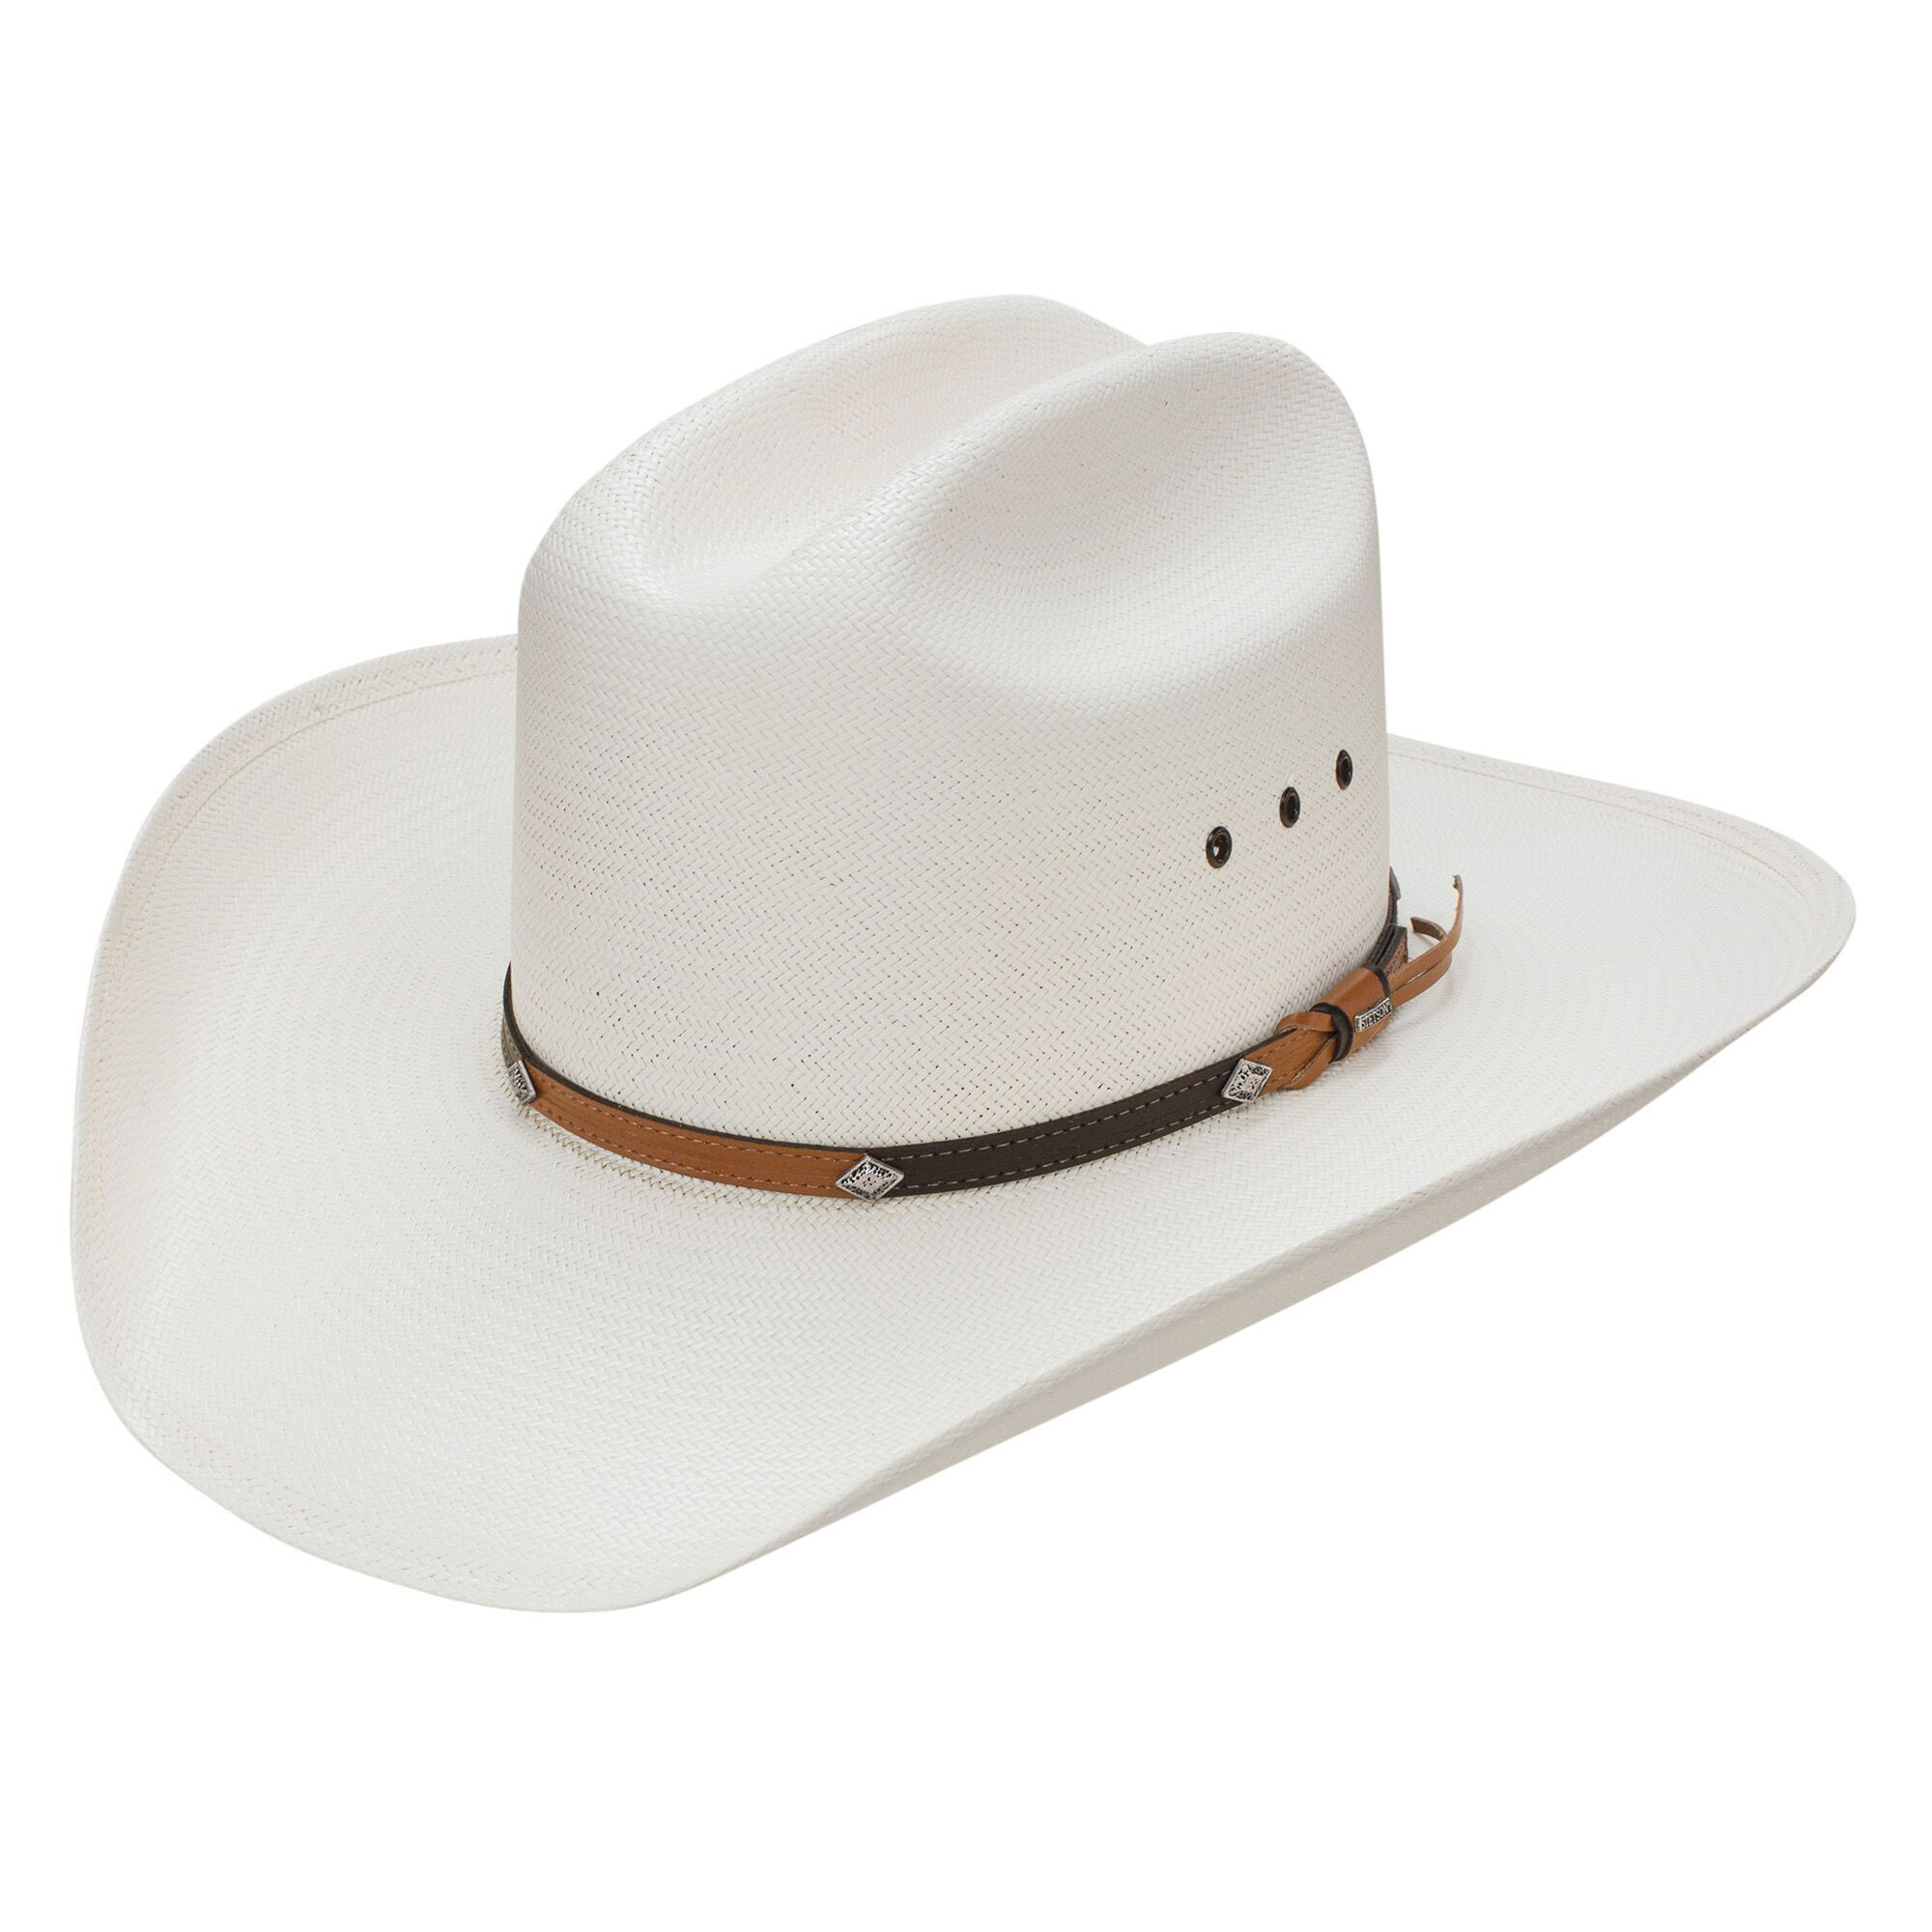 275a9a5037fa6 Stetson Grant K 10X Straw Hat. Hover to zoom